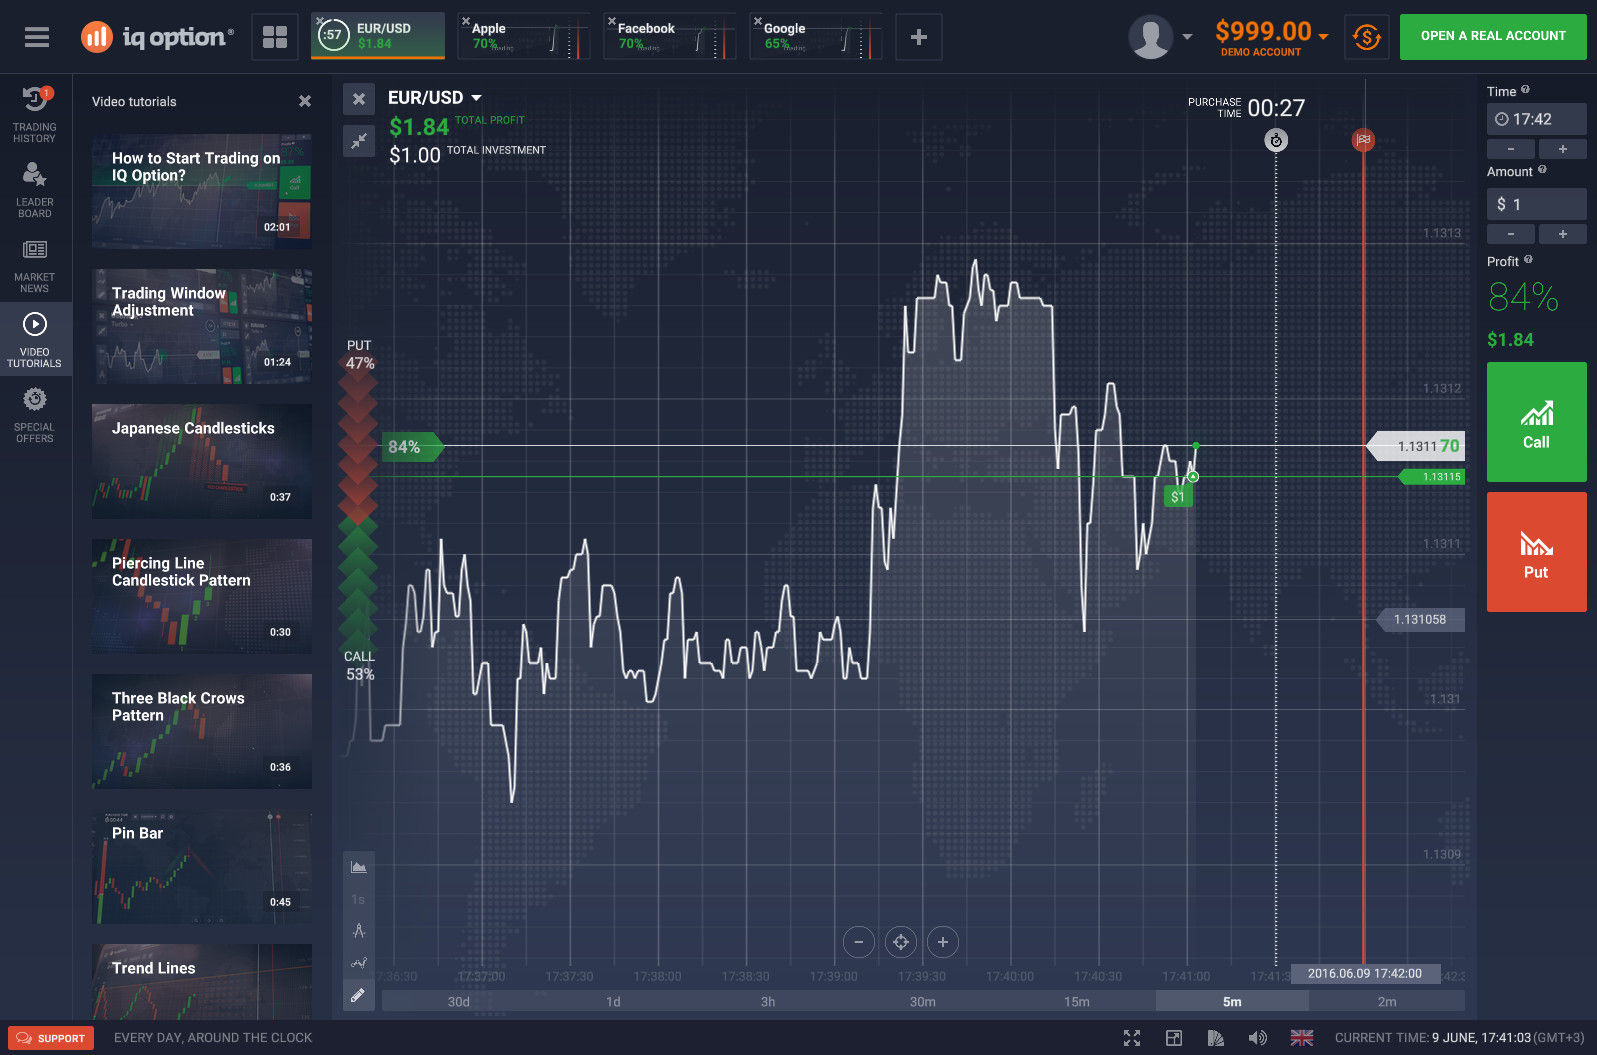 Switzerland binary options trading signals live review